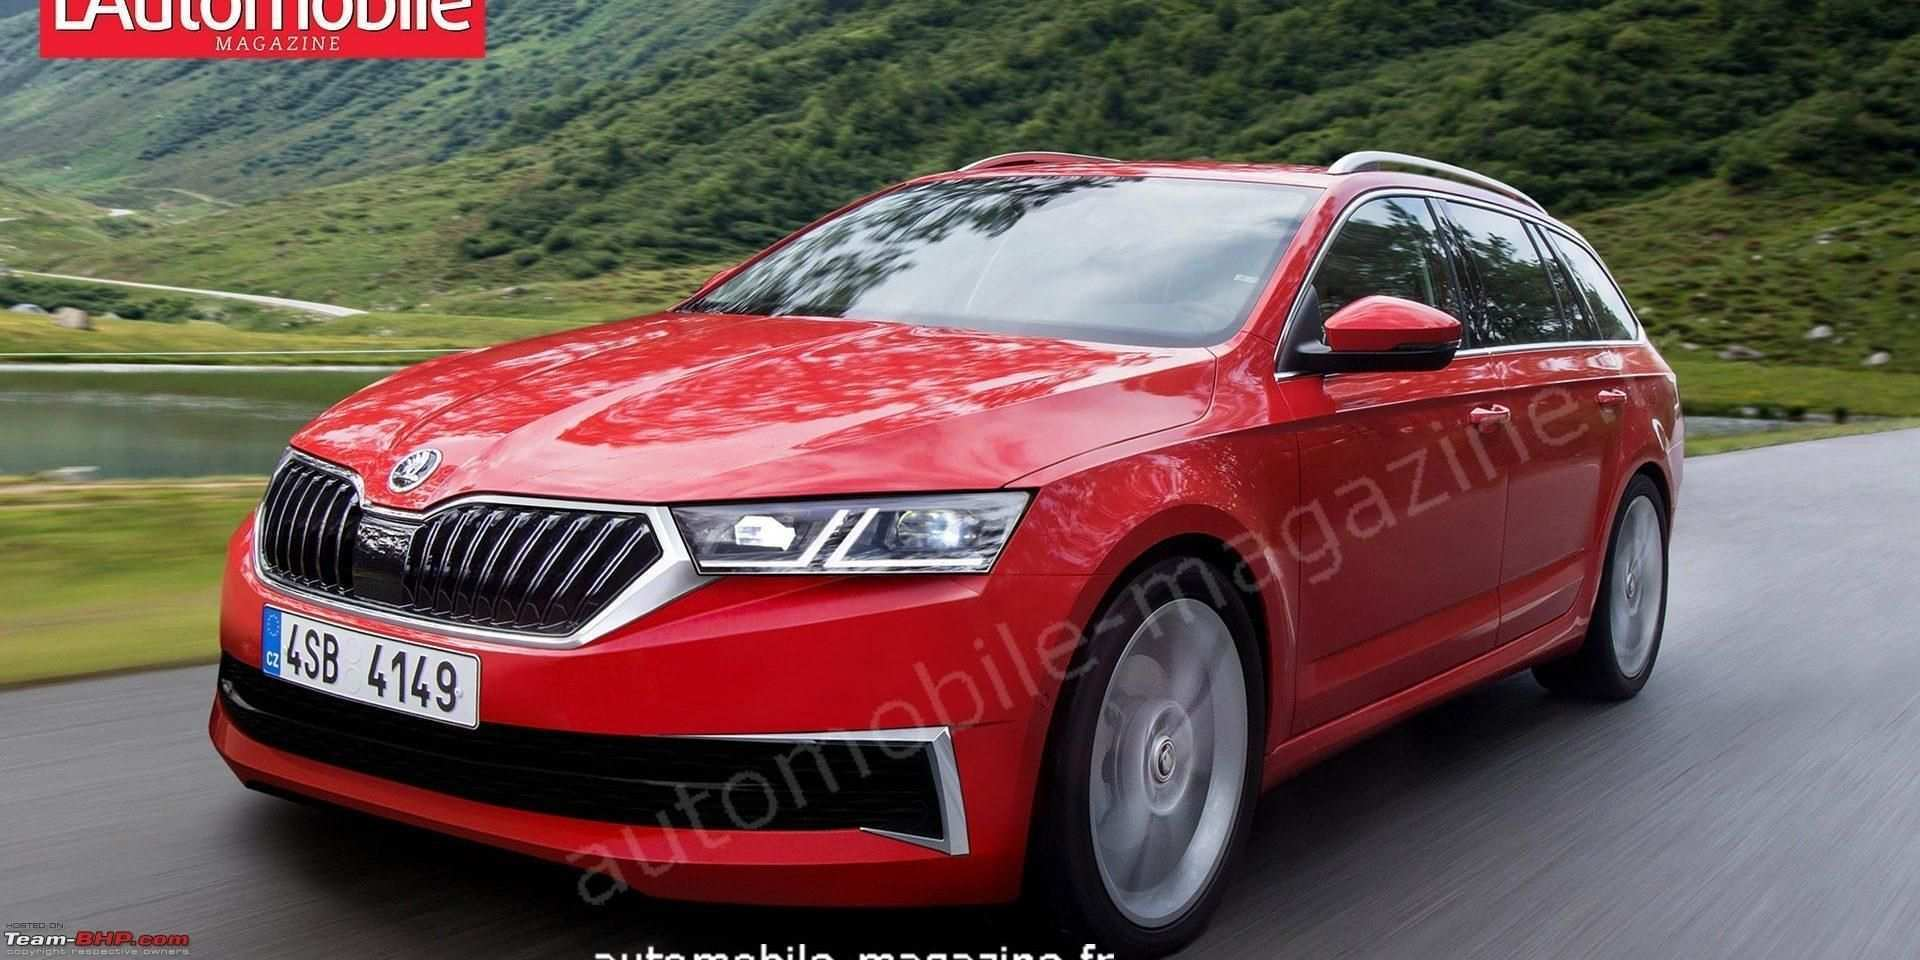 29 Great 2020 Skoda Octavia 2020 First Drive with 2020 Skoda Octavia 2020